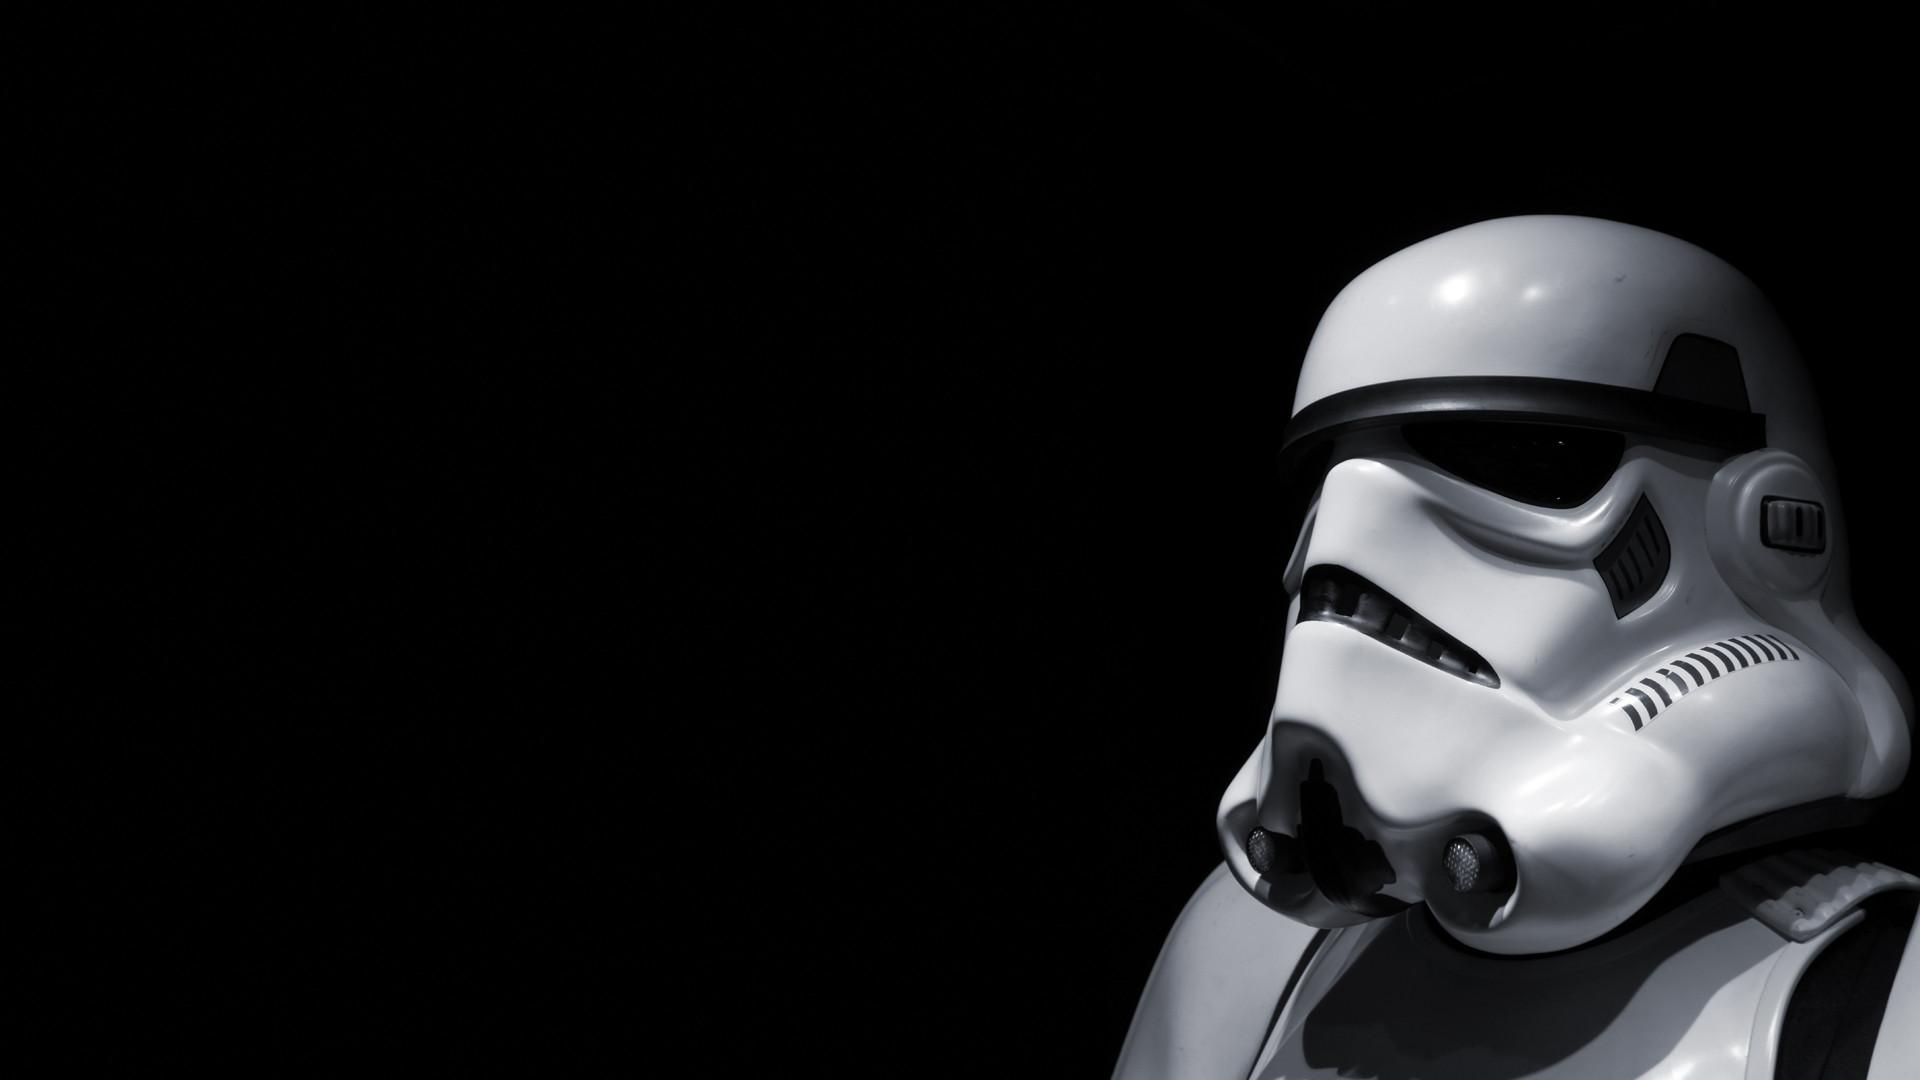 Stormtrooper [1920x1080] I shot this photo of the stormtrooper ...